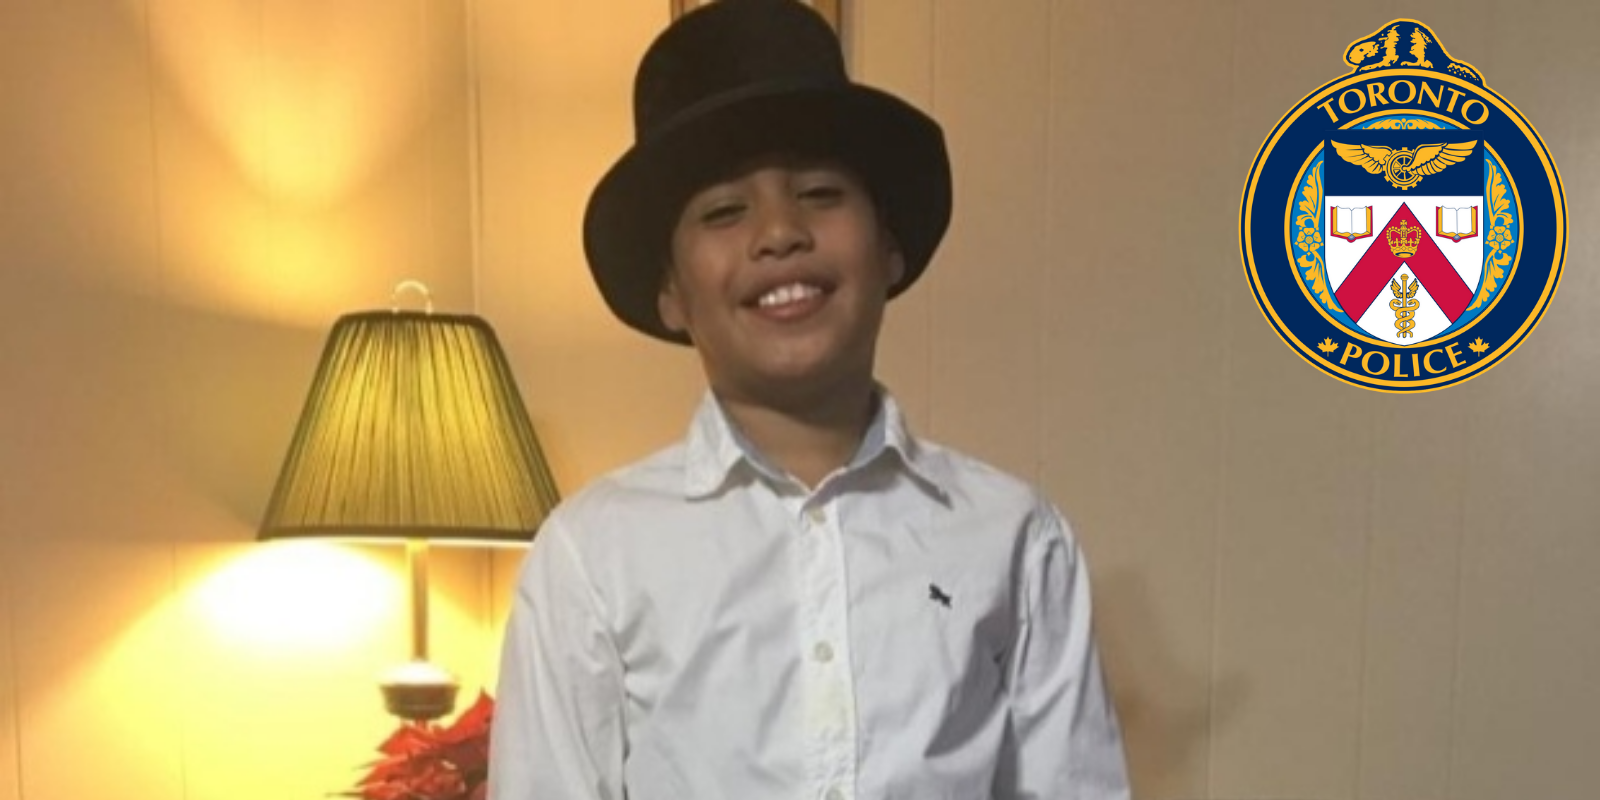 Toronto police arrest alleged getaway driver from homicide that claimed life of 12-year-old boy